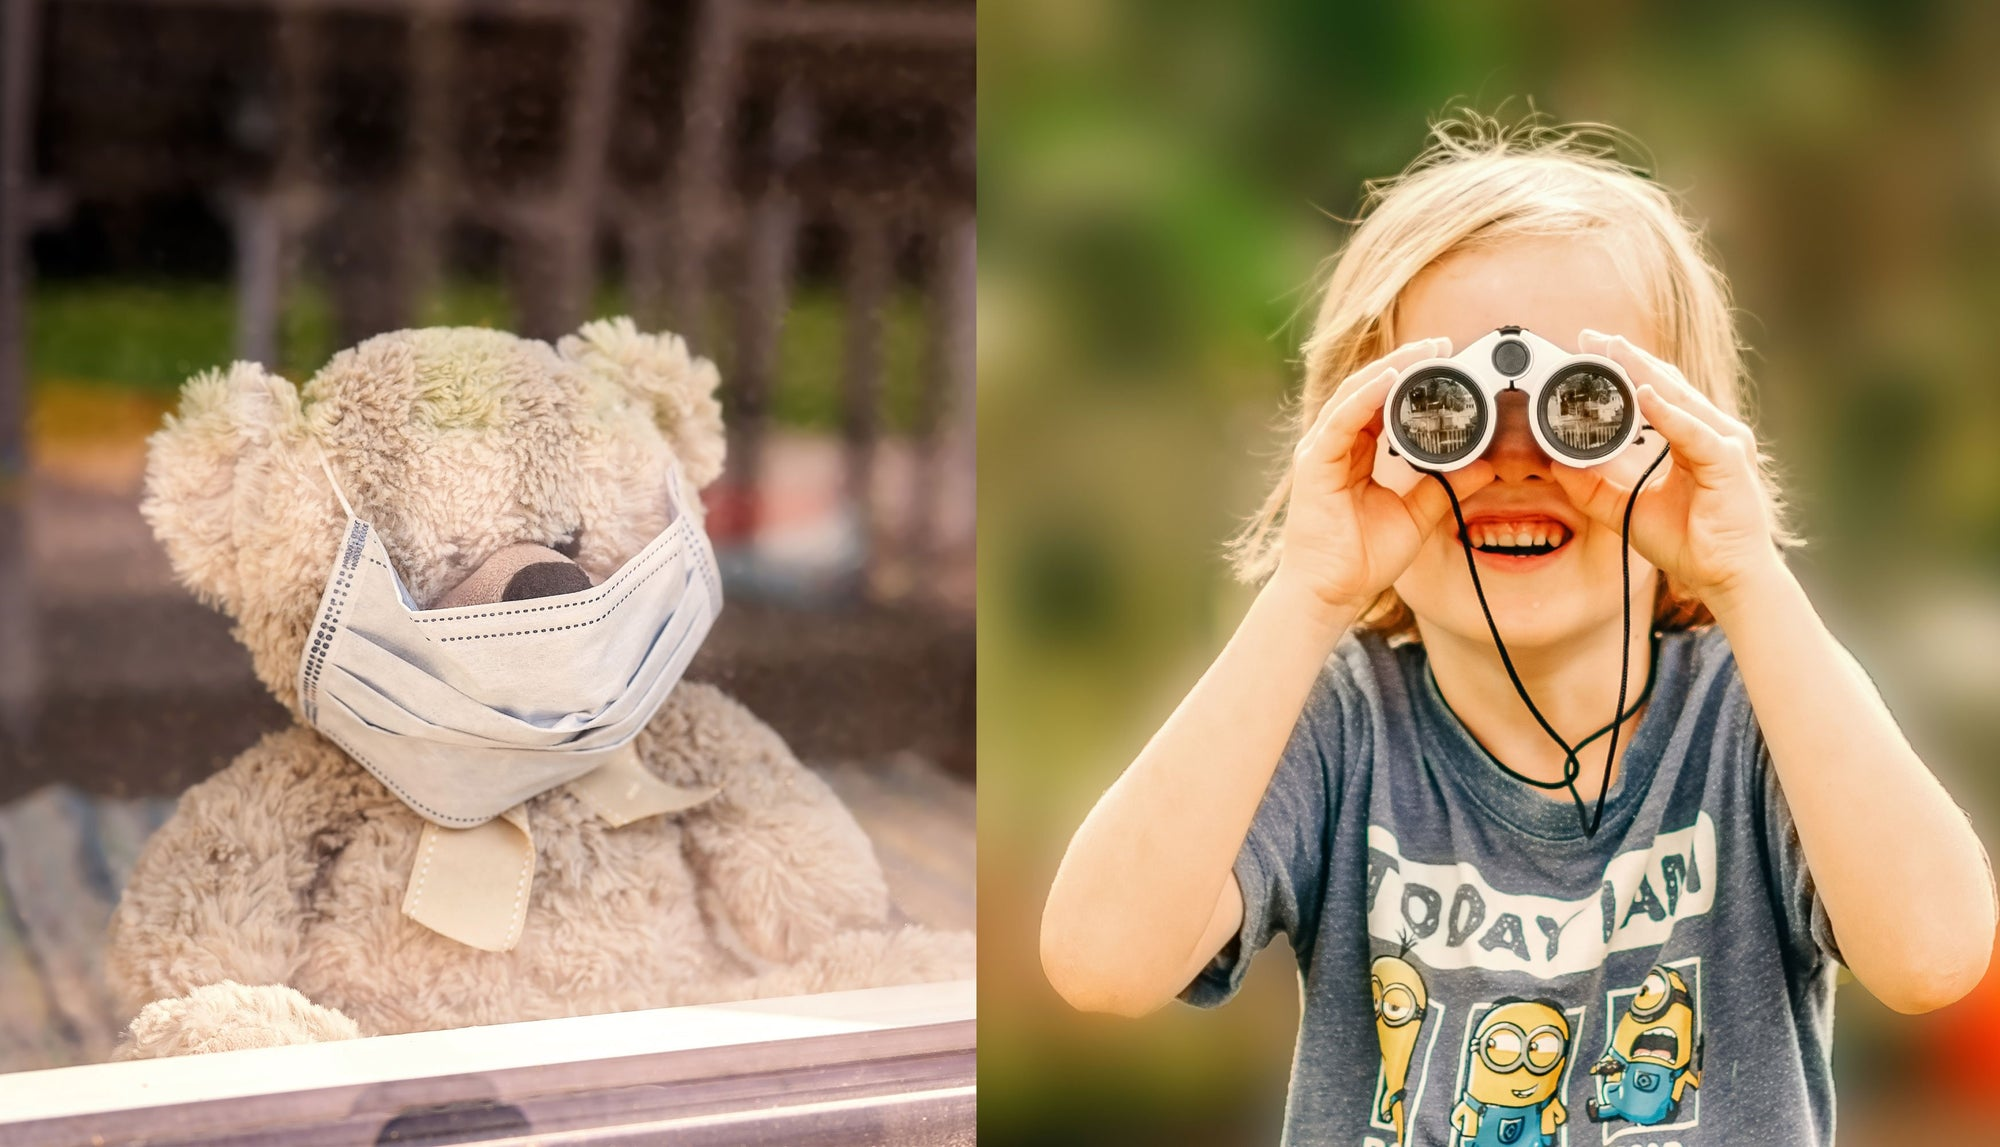 teddy bear in window, child with binoculars, teddy bear hunt